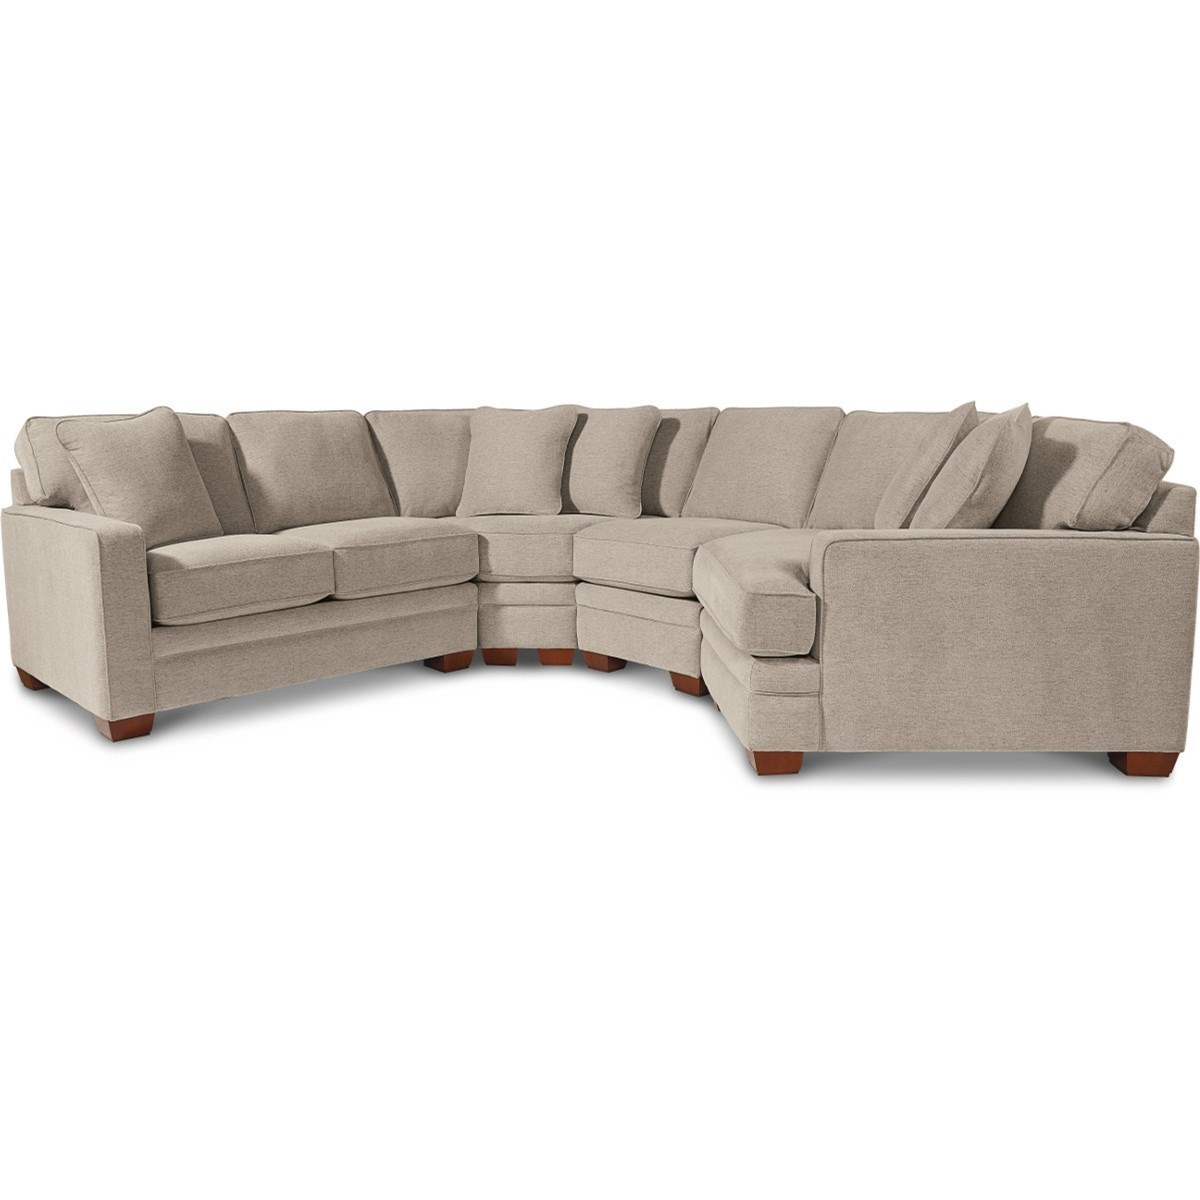 La Z Boy Meyer Contemporary 4 Piece Sectional With Left